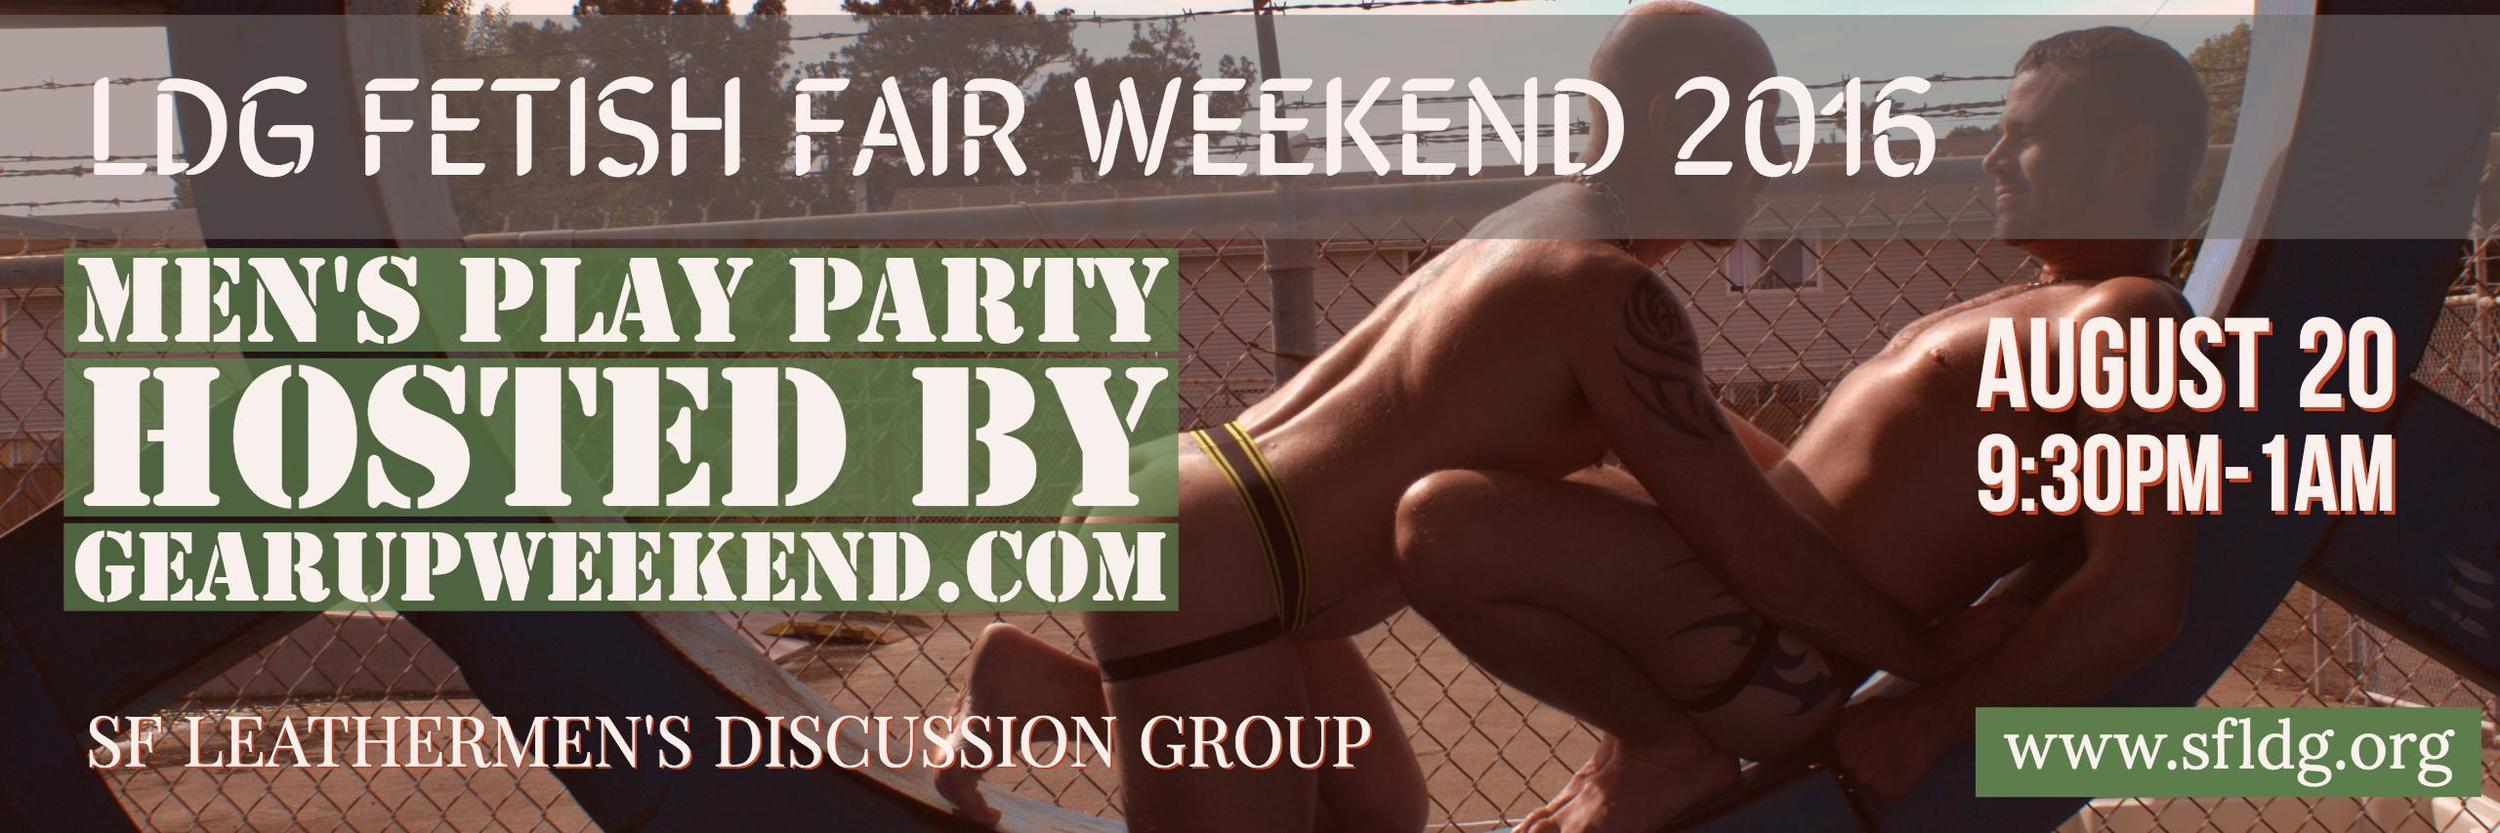 After the LDG Fetish Fair Weekend 2016: Fetish Fair, we turn the dungeon over to the men of GearUp Weekend for a sexy night in the dungeon. Gearup is an annual weekend camp in Northern California which specifically offers a great space for new and experienced kinksters who identify as men to learn and play. They also host regular play parties. Come meet Gearup, and play in San Francisco's largest dungeon.